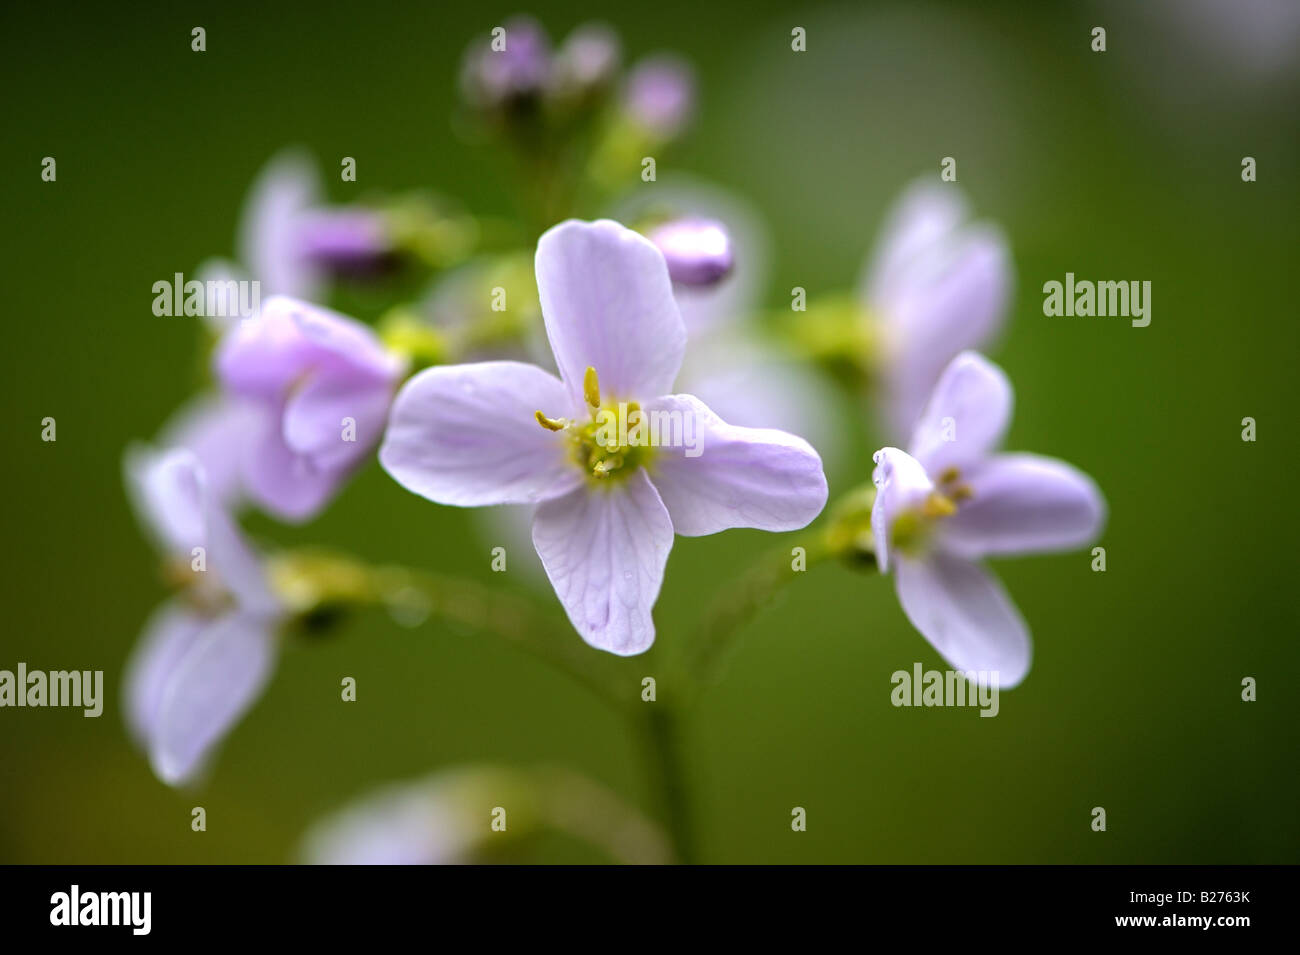 Lady s Smock or Cuckoo Flower Stock Photo